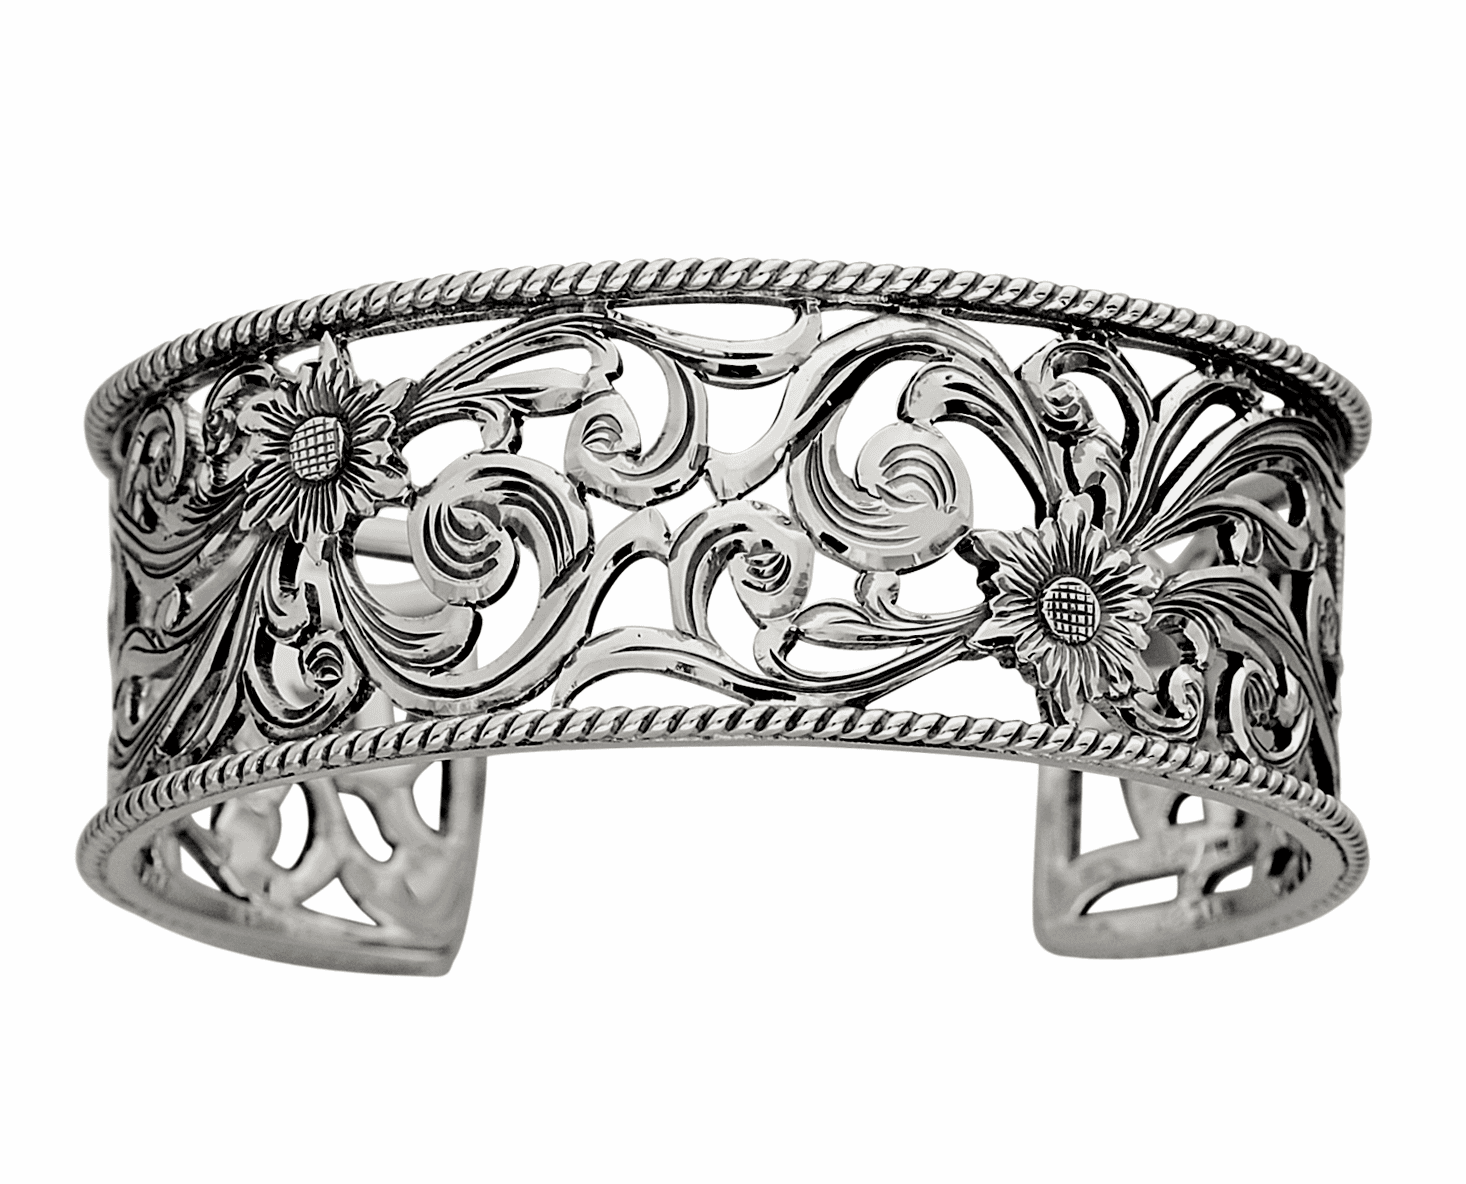 Vogt Hand Cut Filigree Rope Edge Bracelet